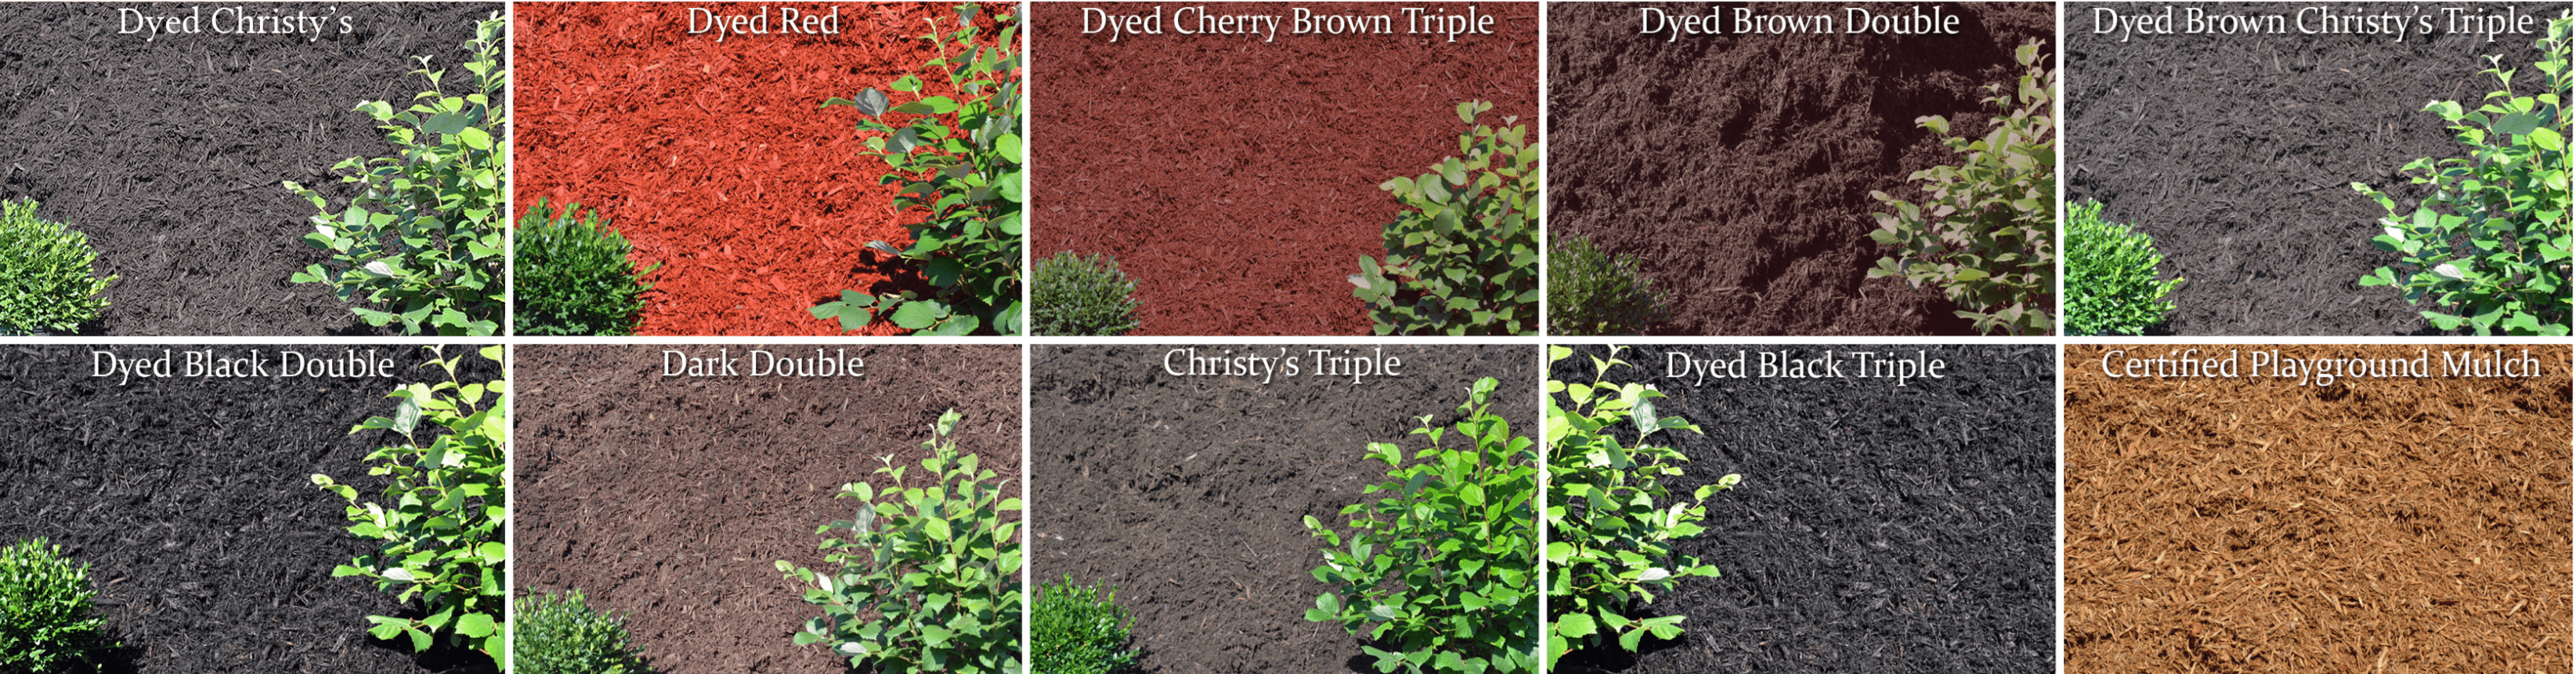 10 of the mulches available at Dragun's with different textures and colors.